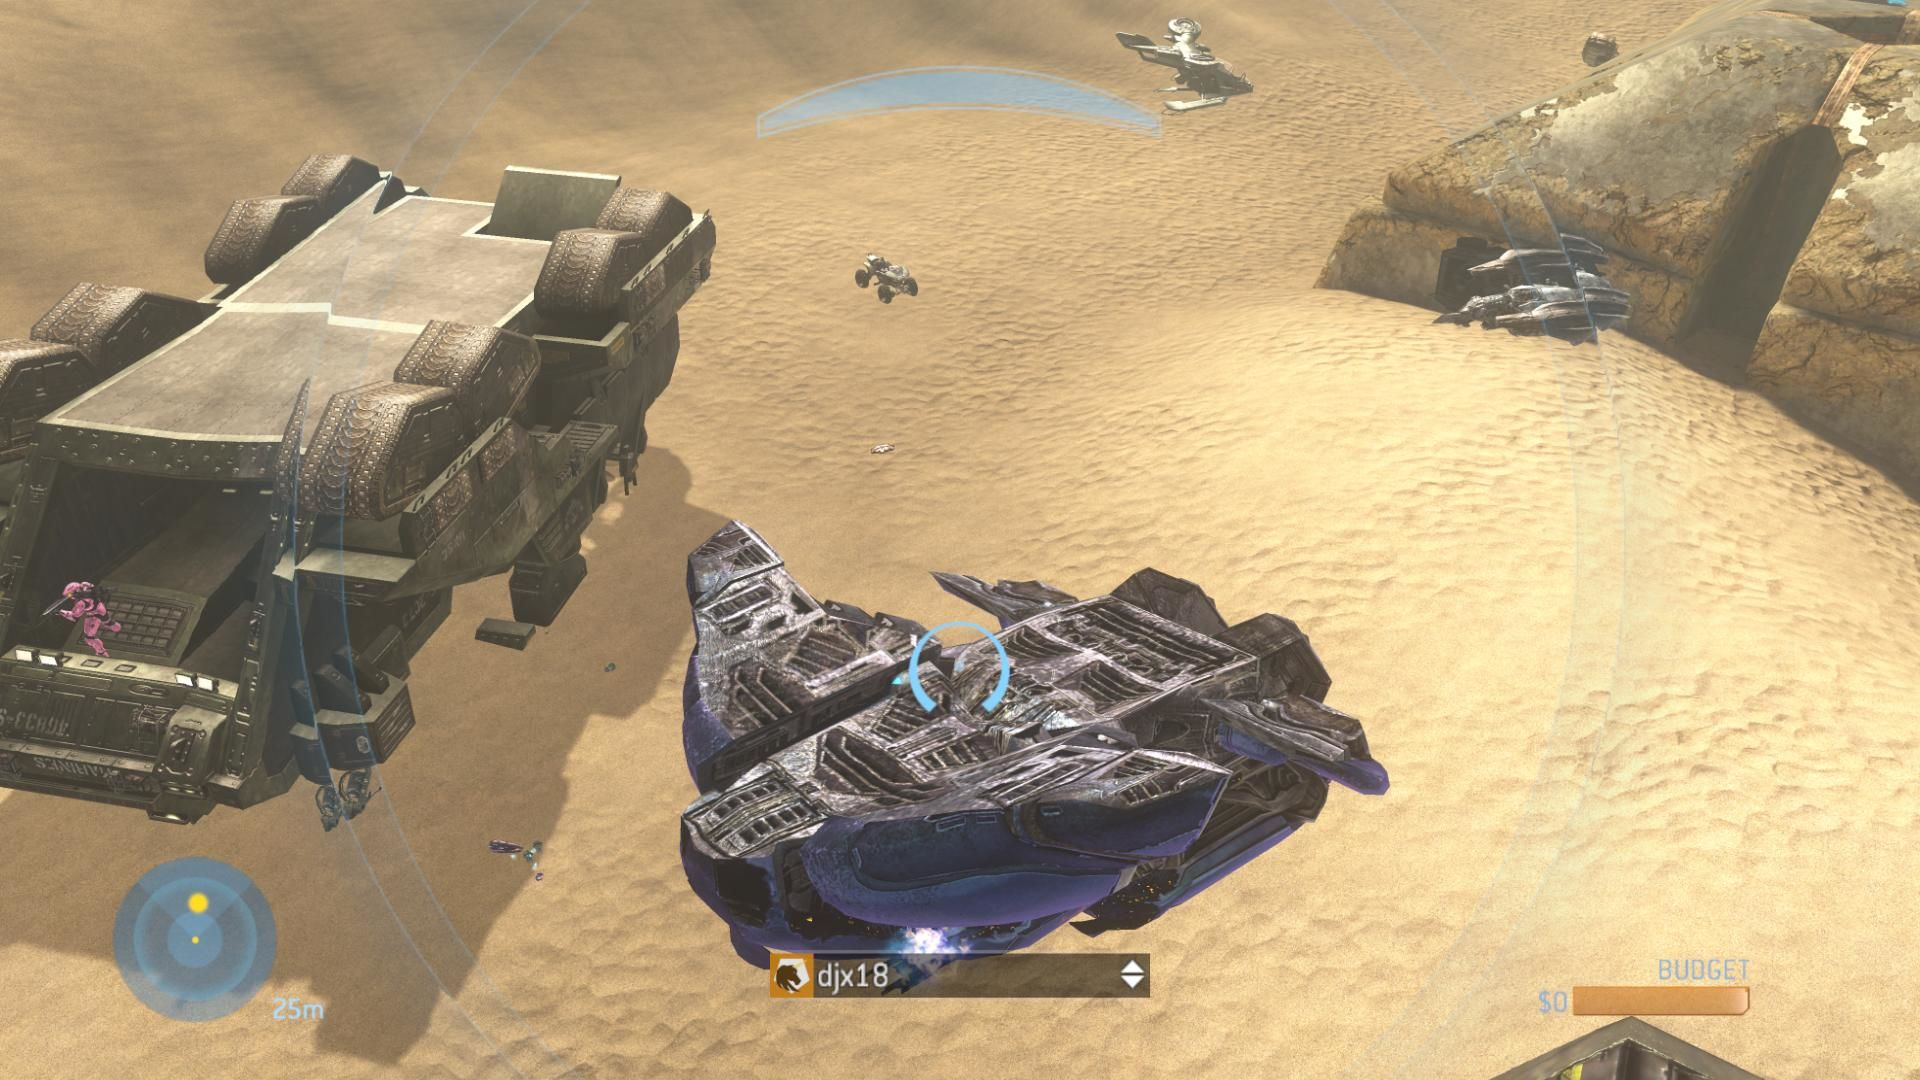 Halo 3 Xbox 360 Pulling a Wraith out from under an upside-down Elephant in a Forge game. The Wraith doesn't normally appear in Sandtrap, nor does the Hornet, which can be seen a little way off. They were placed there